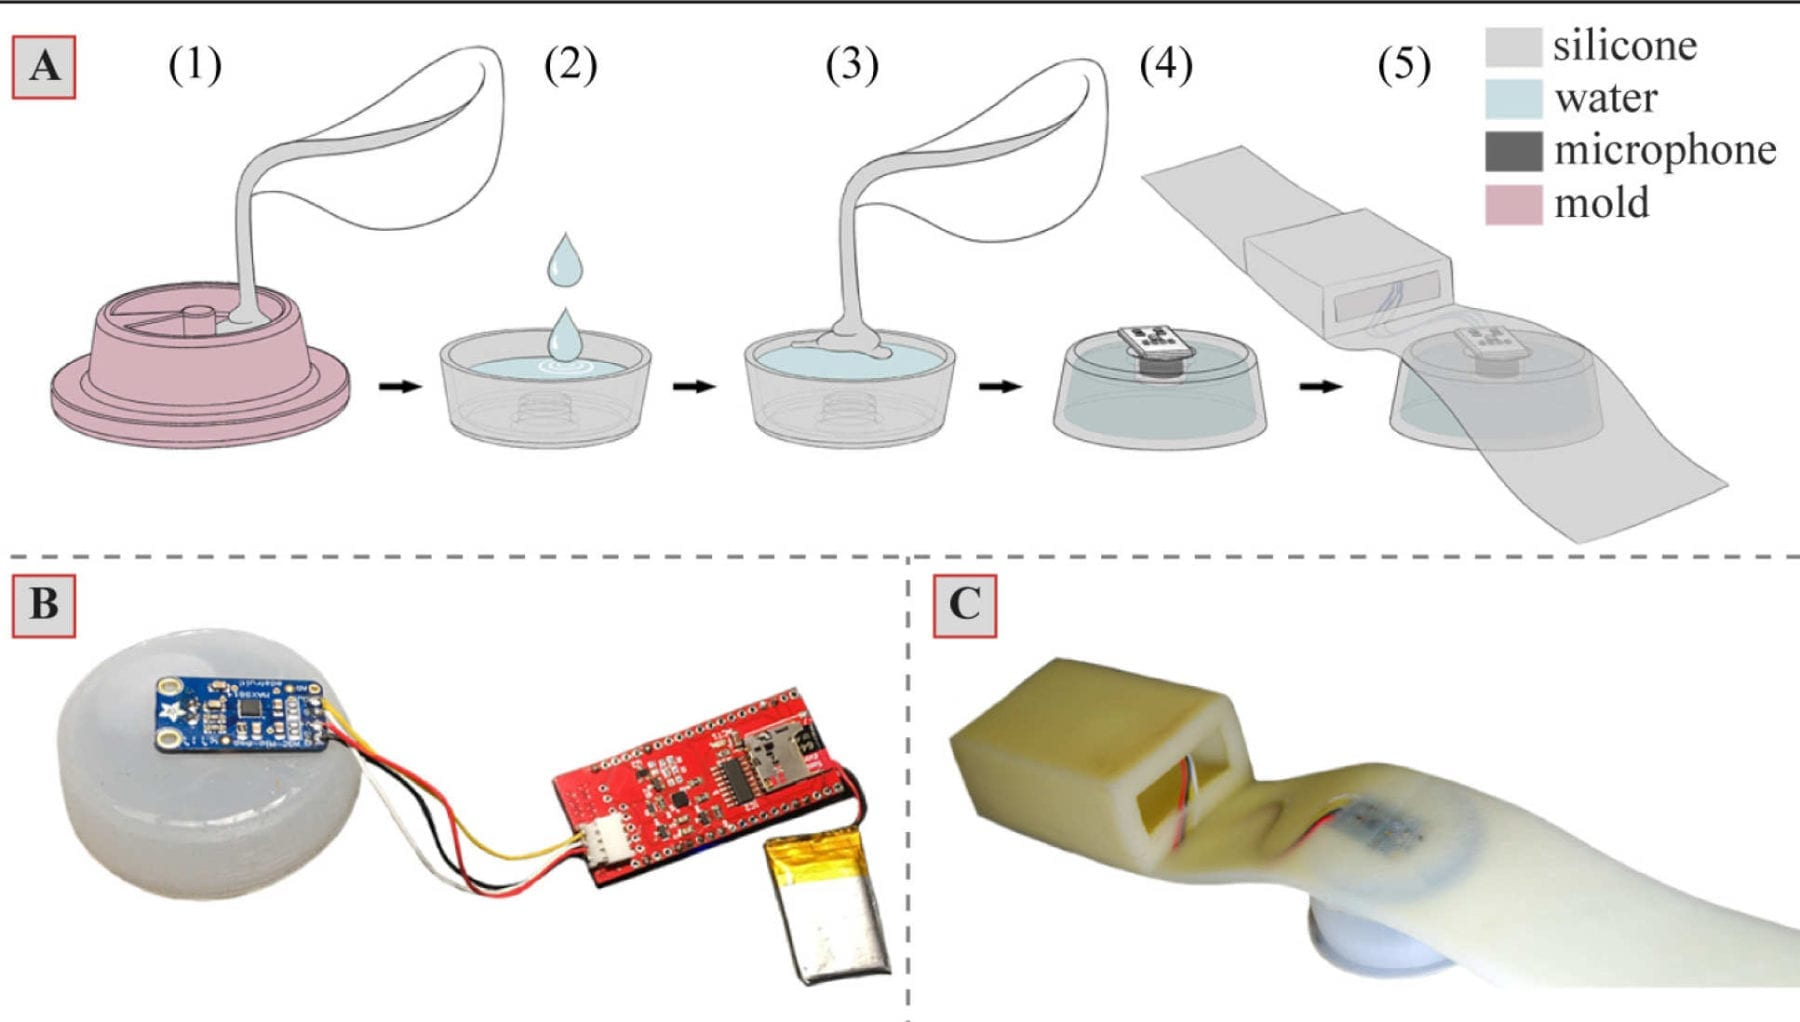 The making of the sensor, using silicone, water, microphone, and a mold.